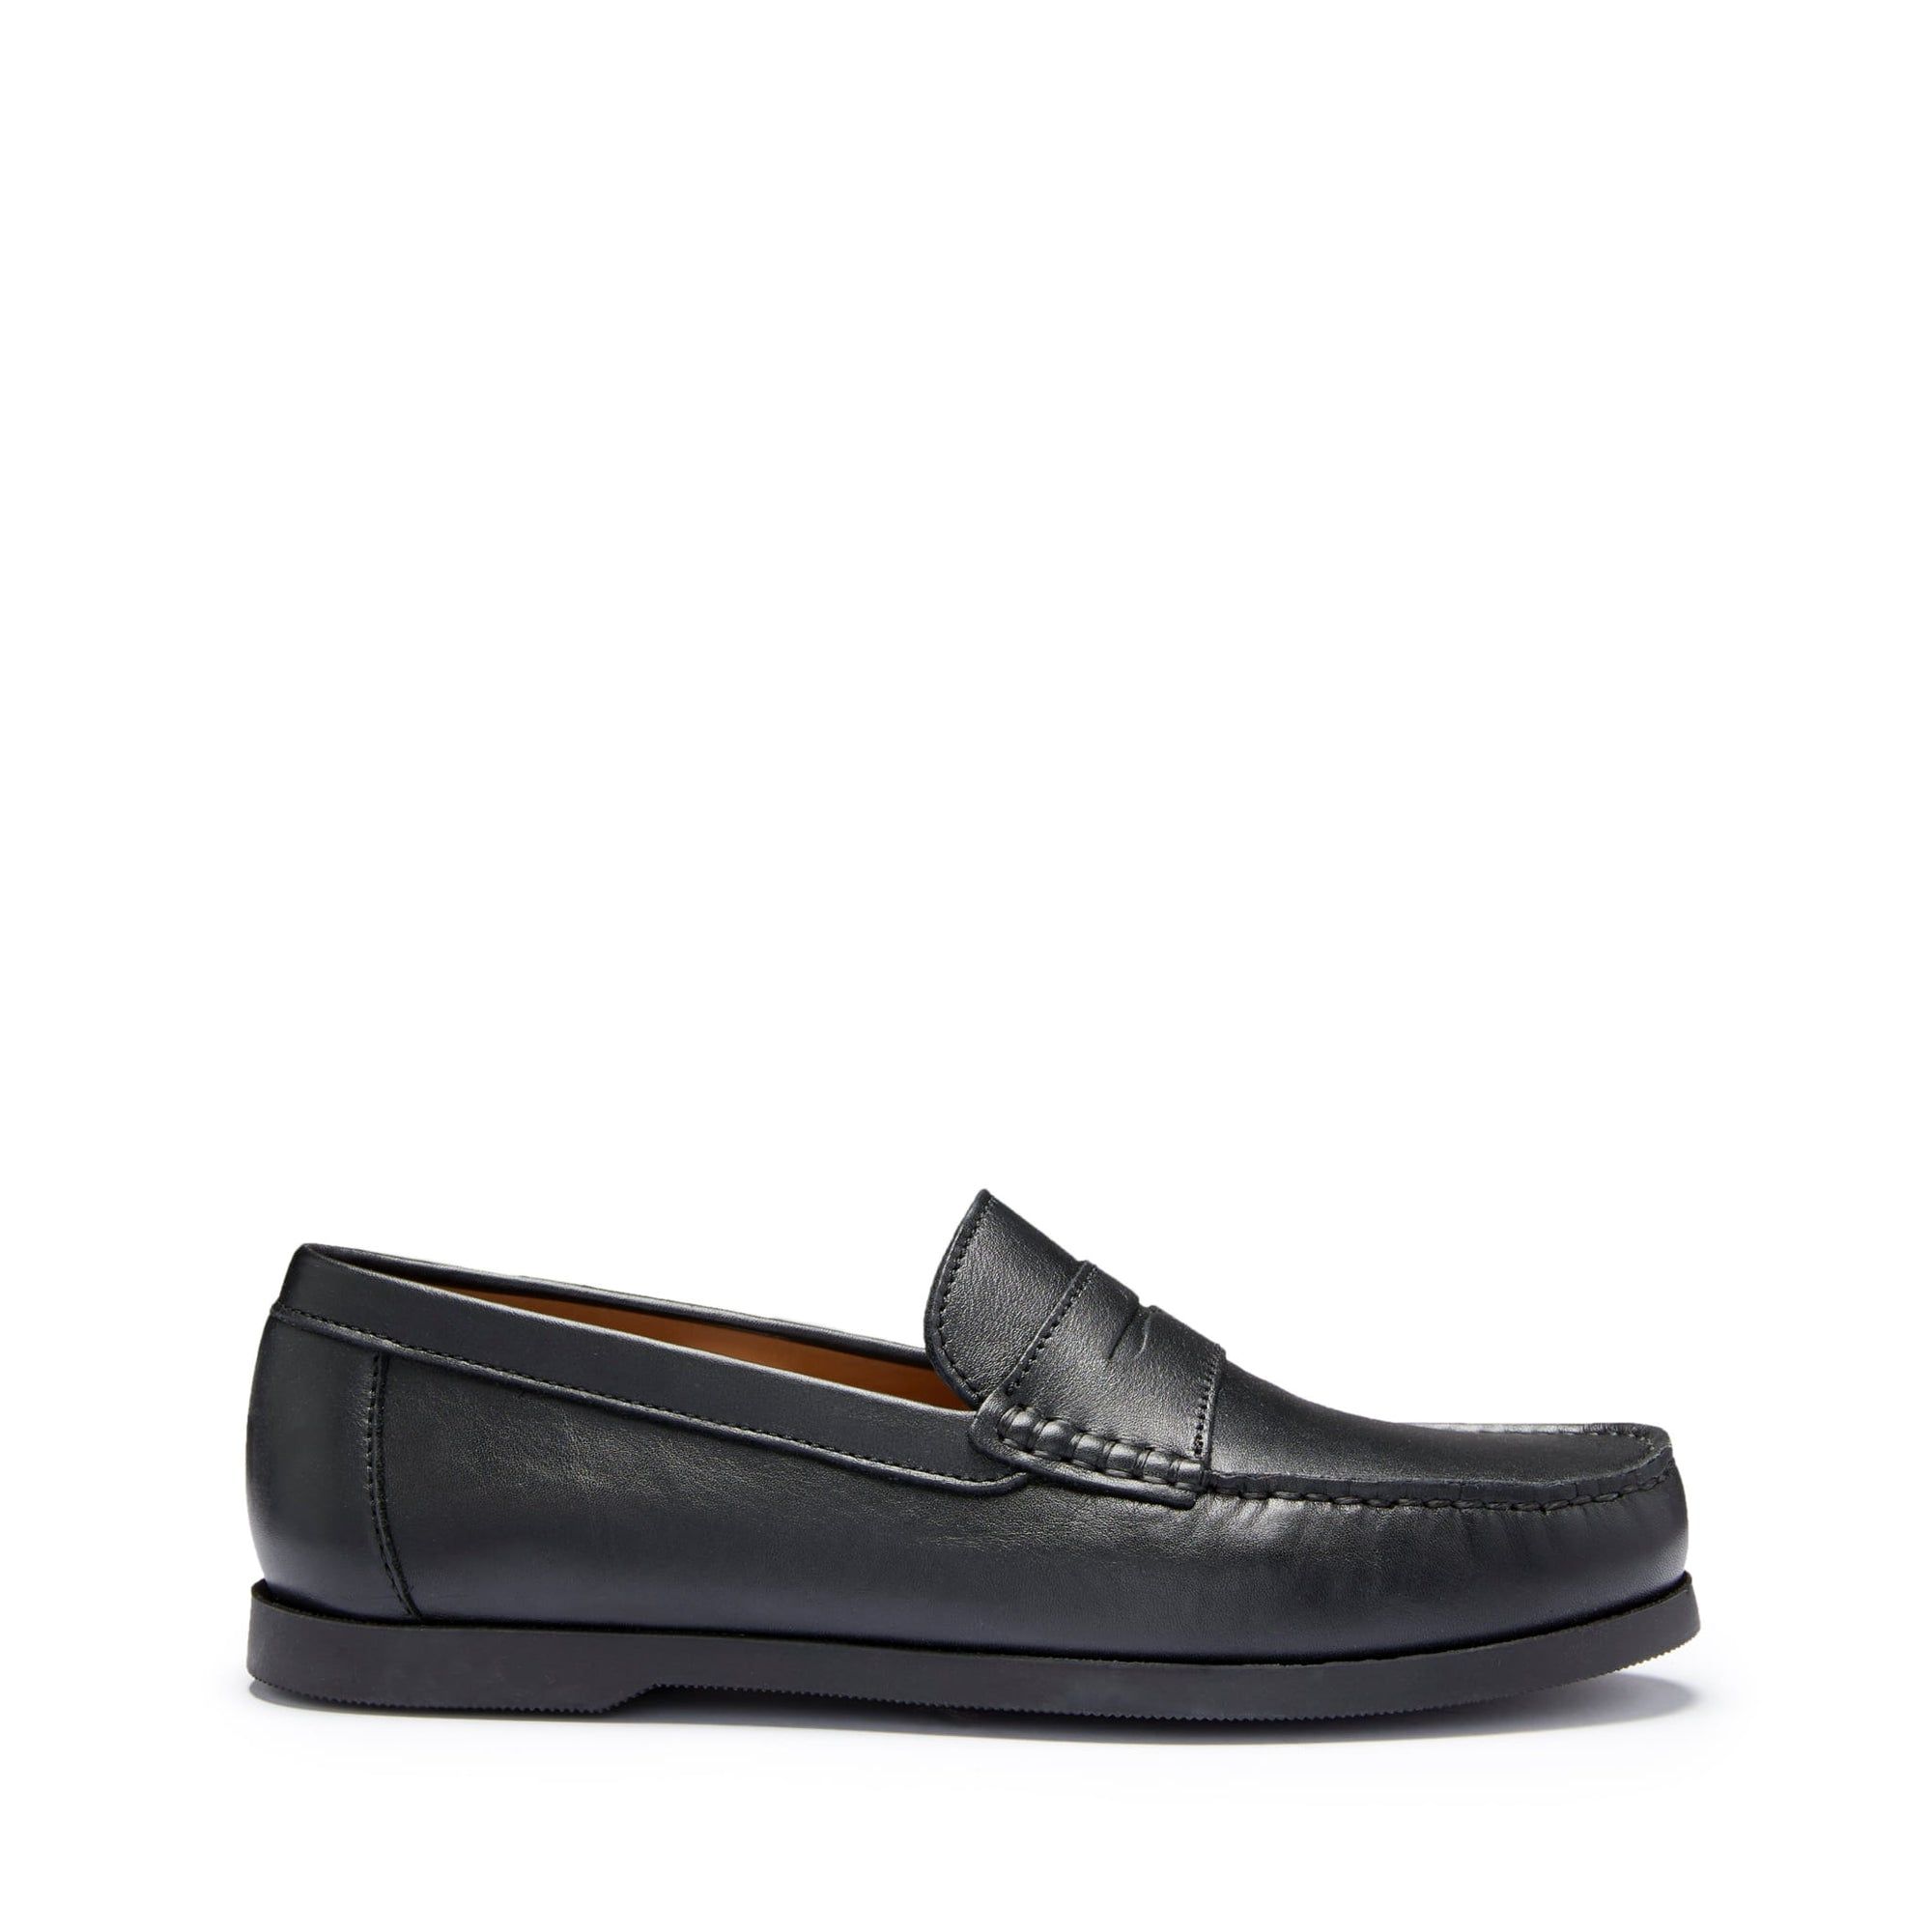 Boat Loafers, black leather